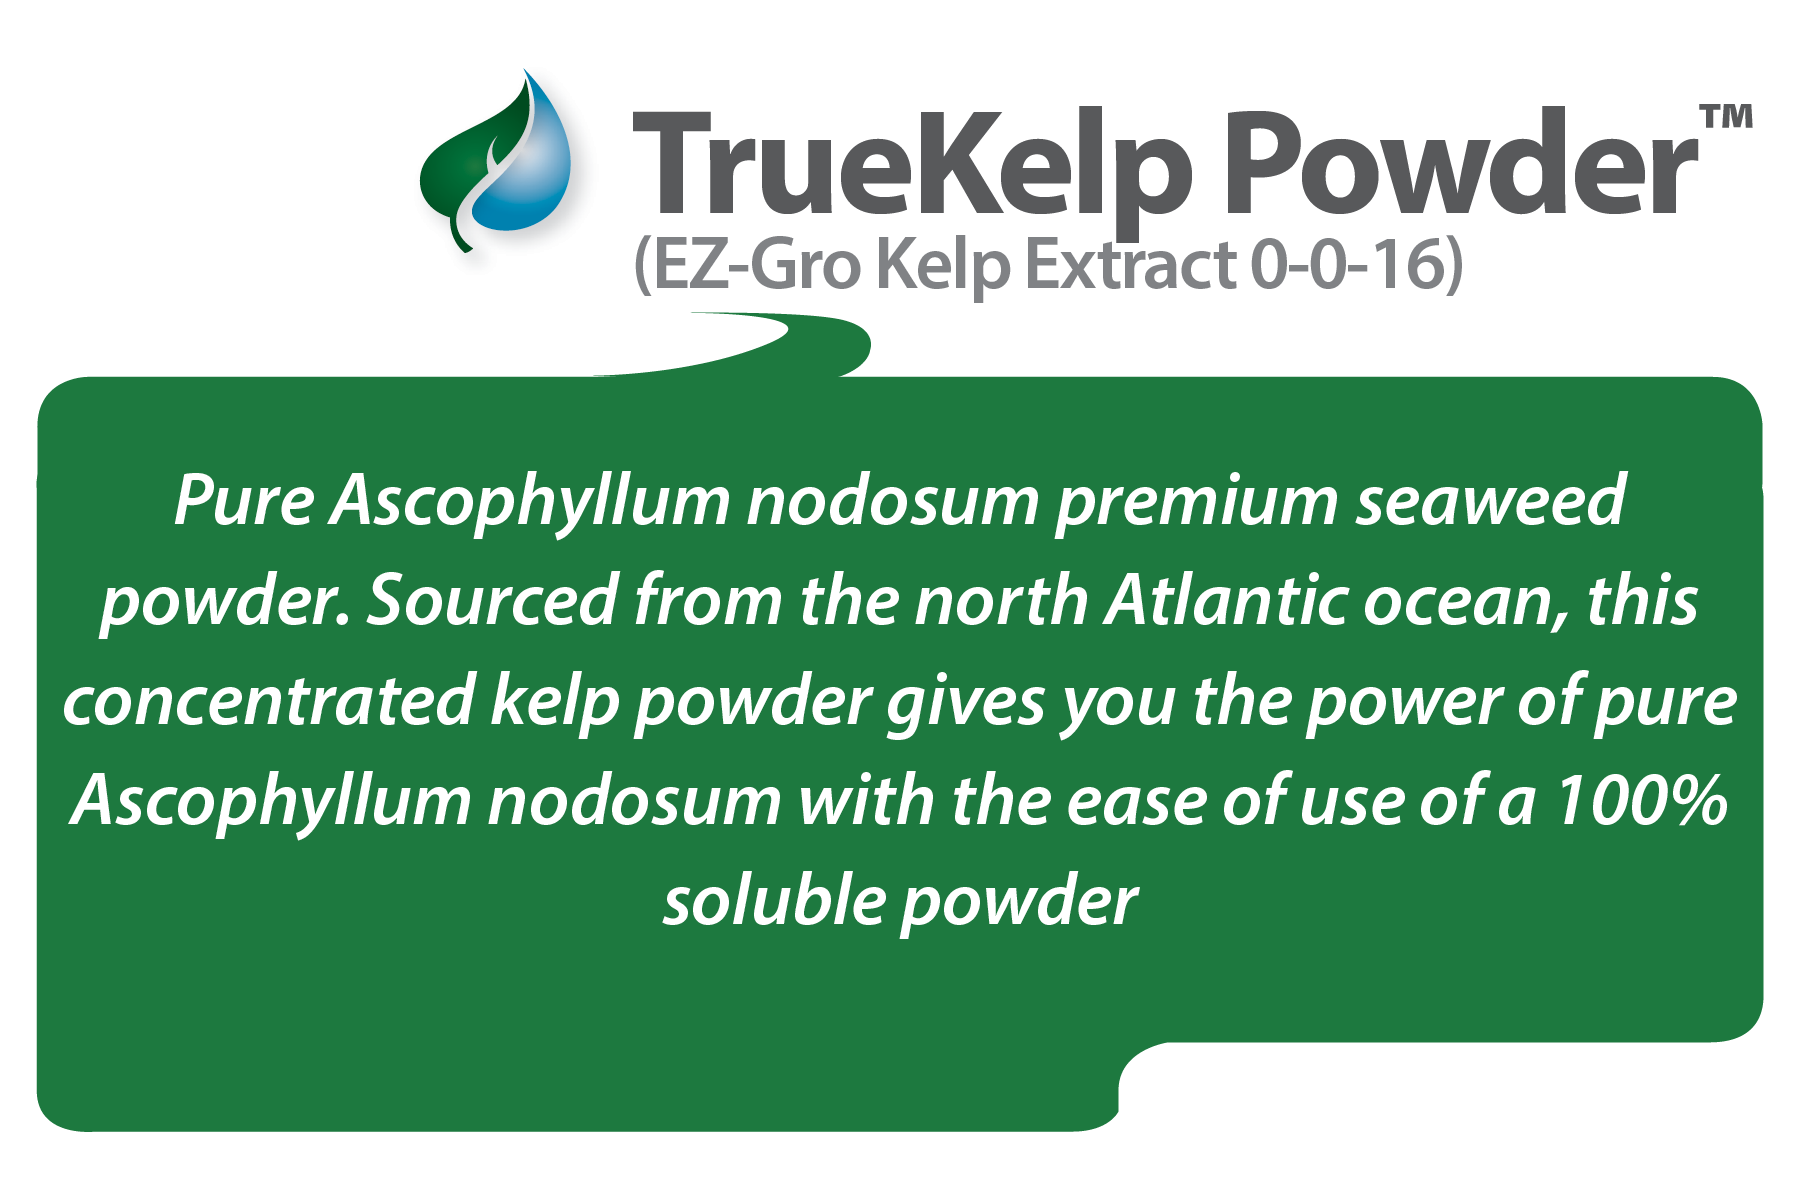 TrueKelp™ EZ Gro Kelp Extract Powder